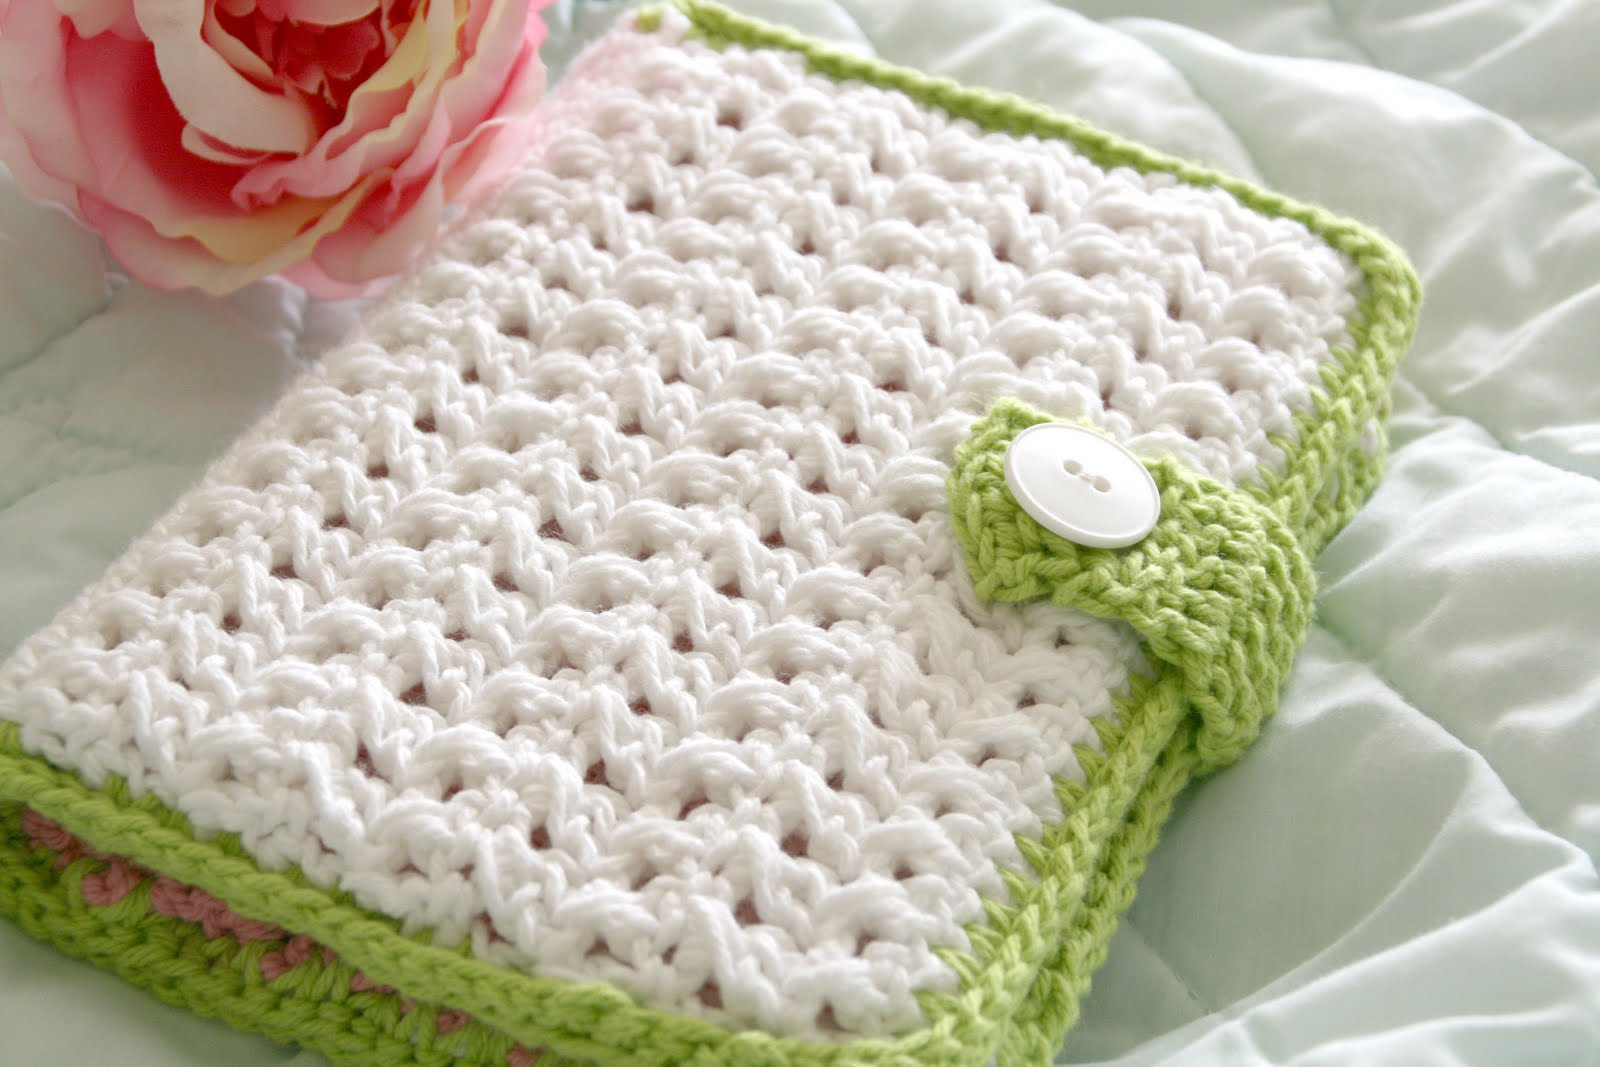 Crocheting Stuff : ... Crochet Place: Some Fun and Cute Patterns and Cool Crochet Stuff